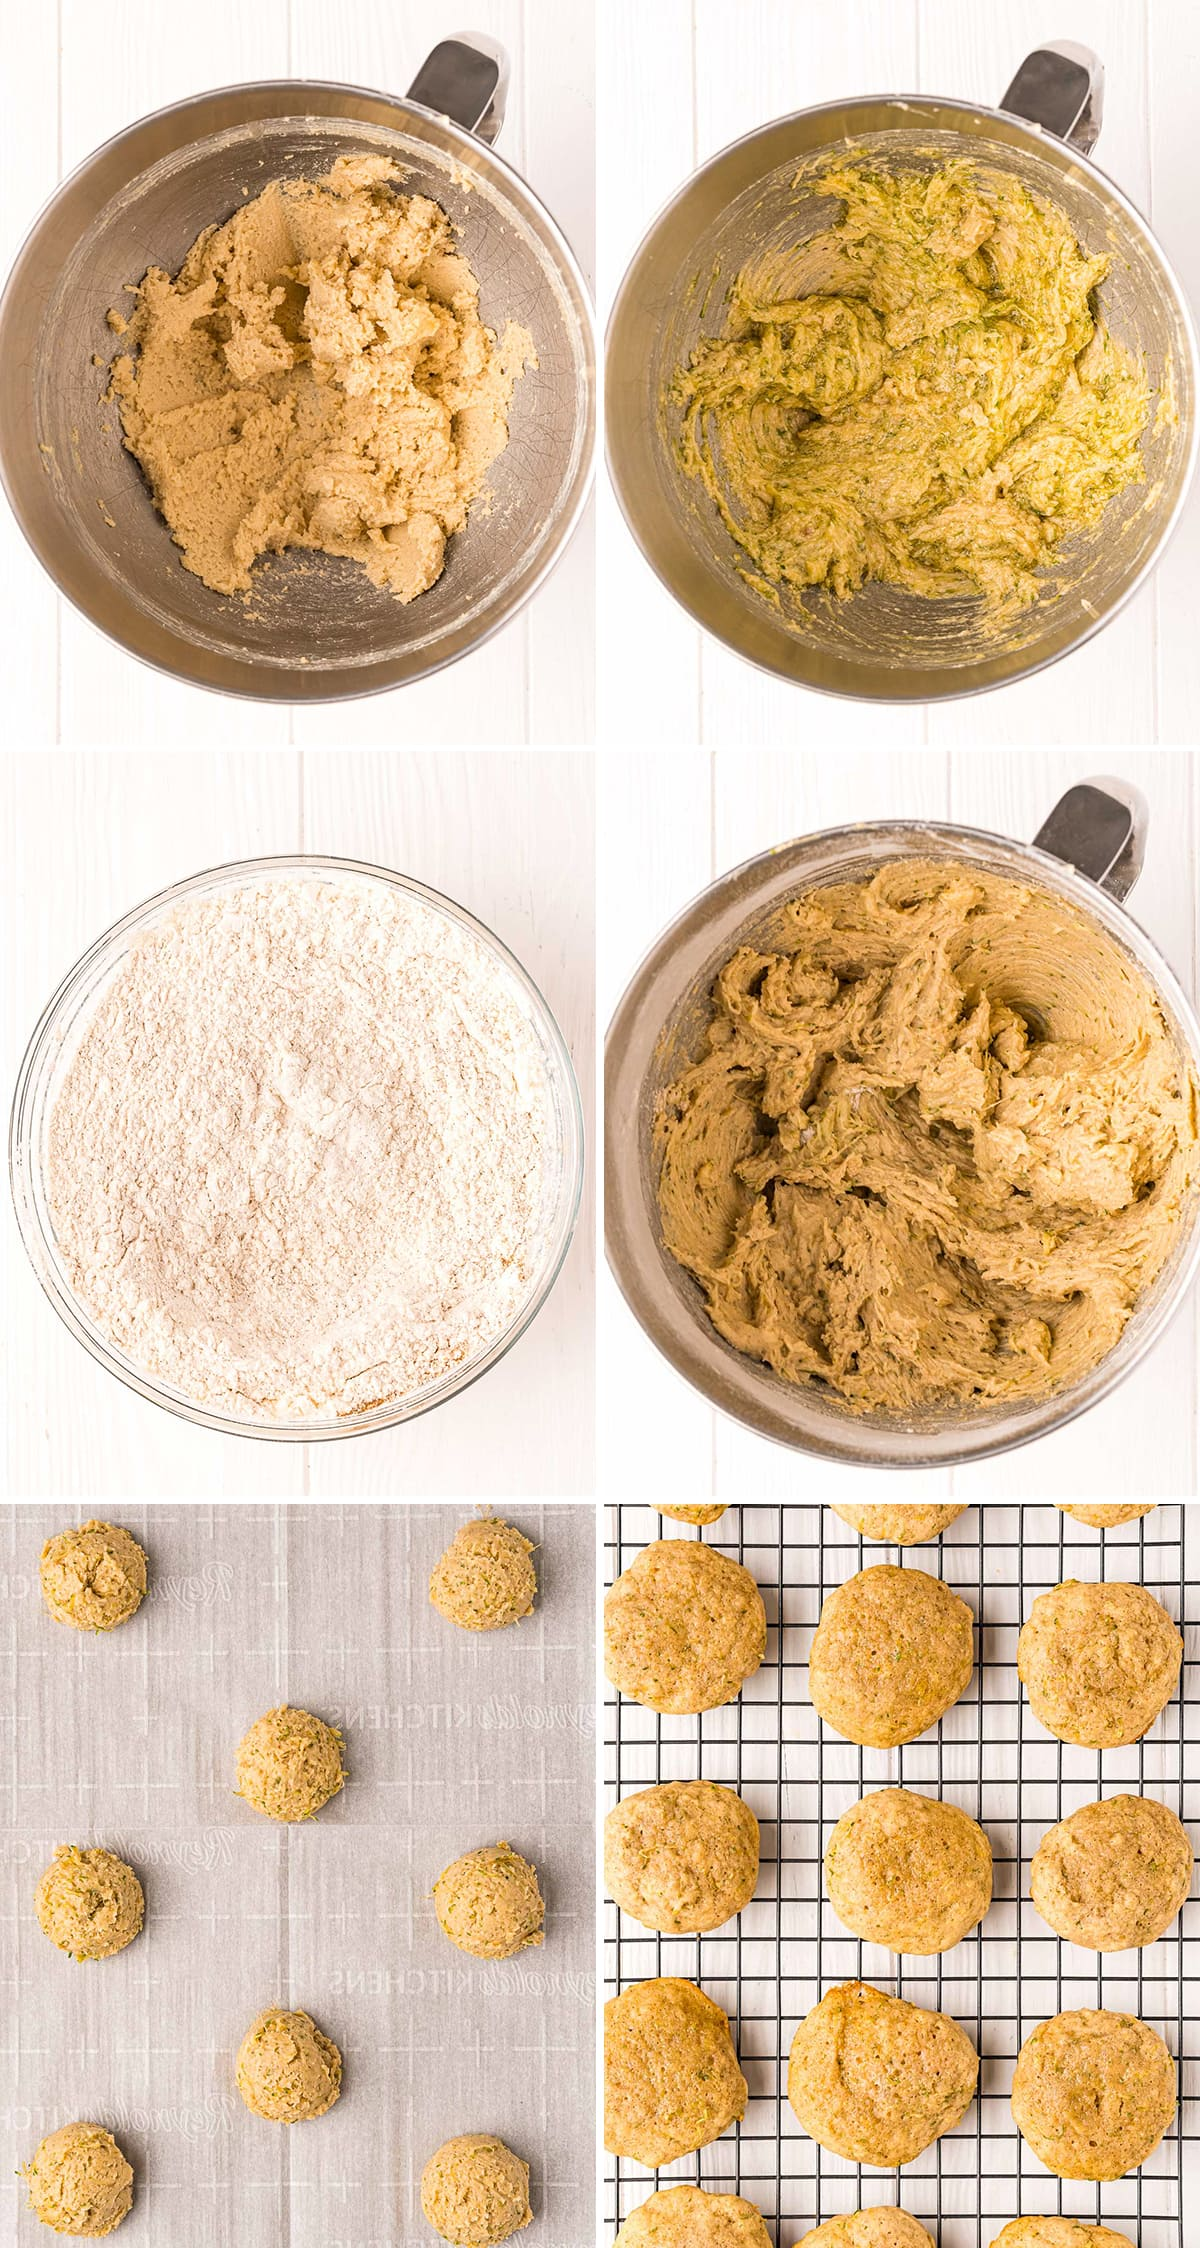 Step by step photos showing how to make zucchini cookies.